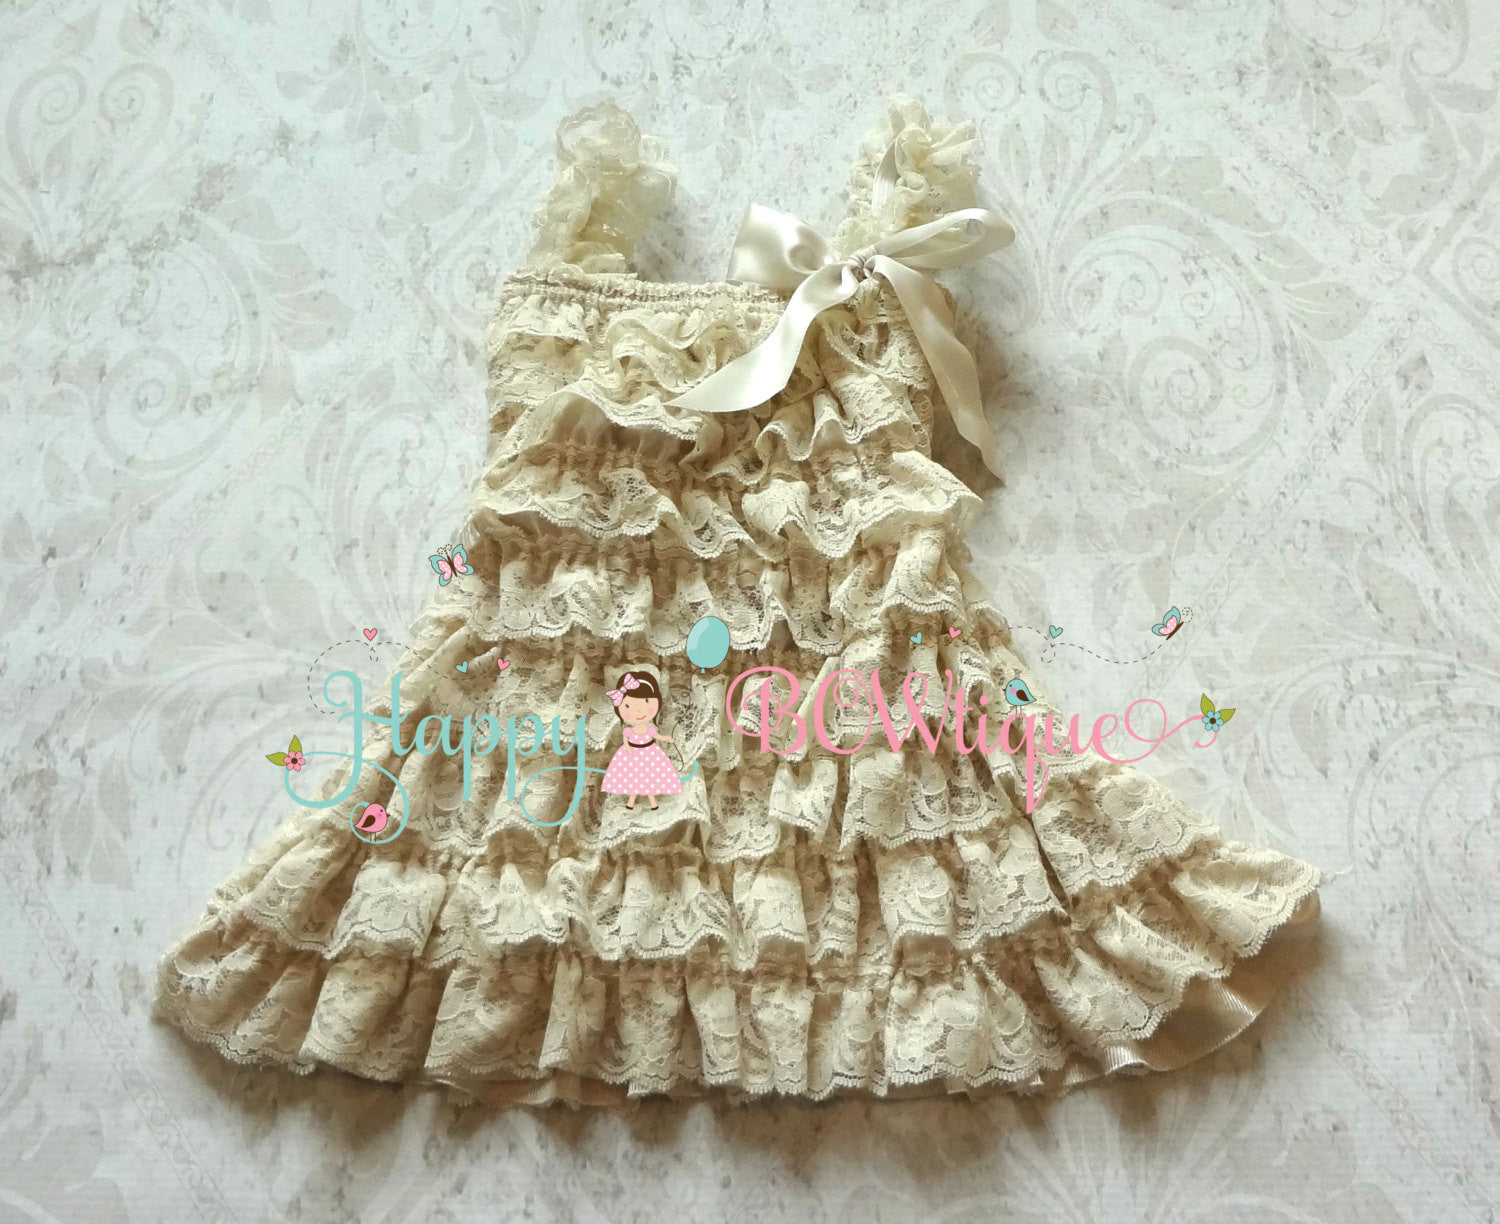 Flower girl dress/ Girl's Champagne Pearl Flower Lace Dress set - Happy BOWtique - children's clothing, Baby Girl clothing